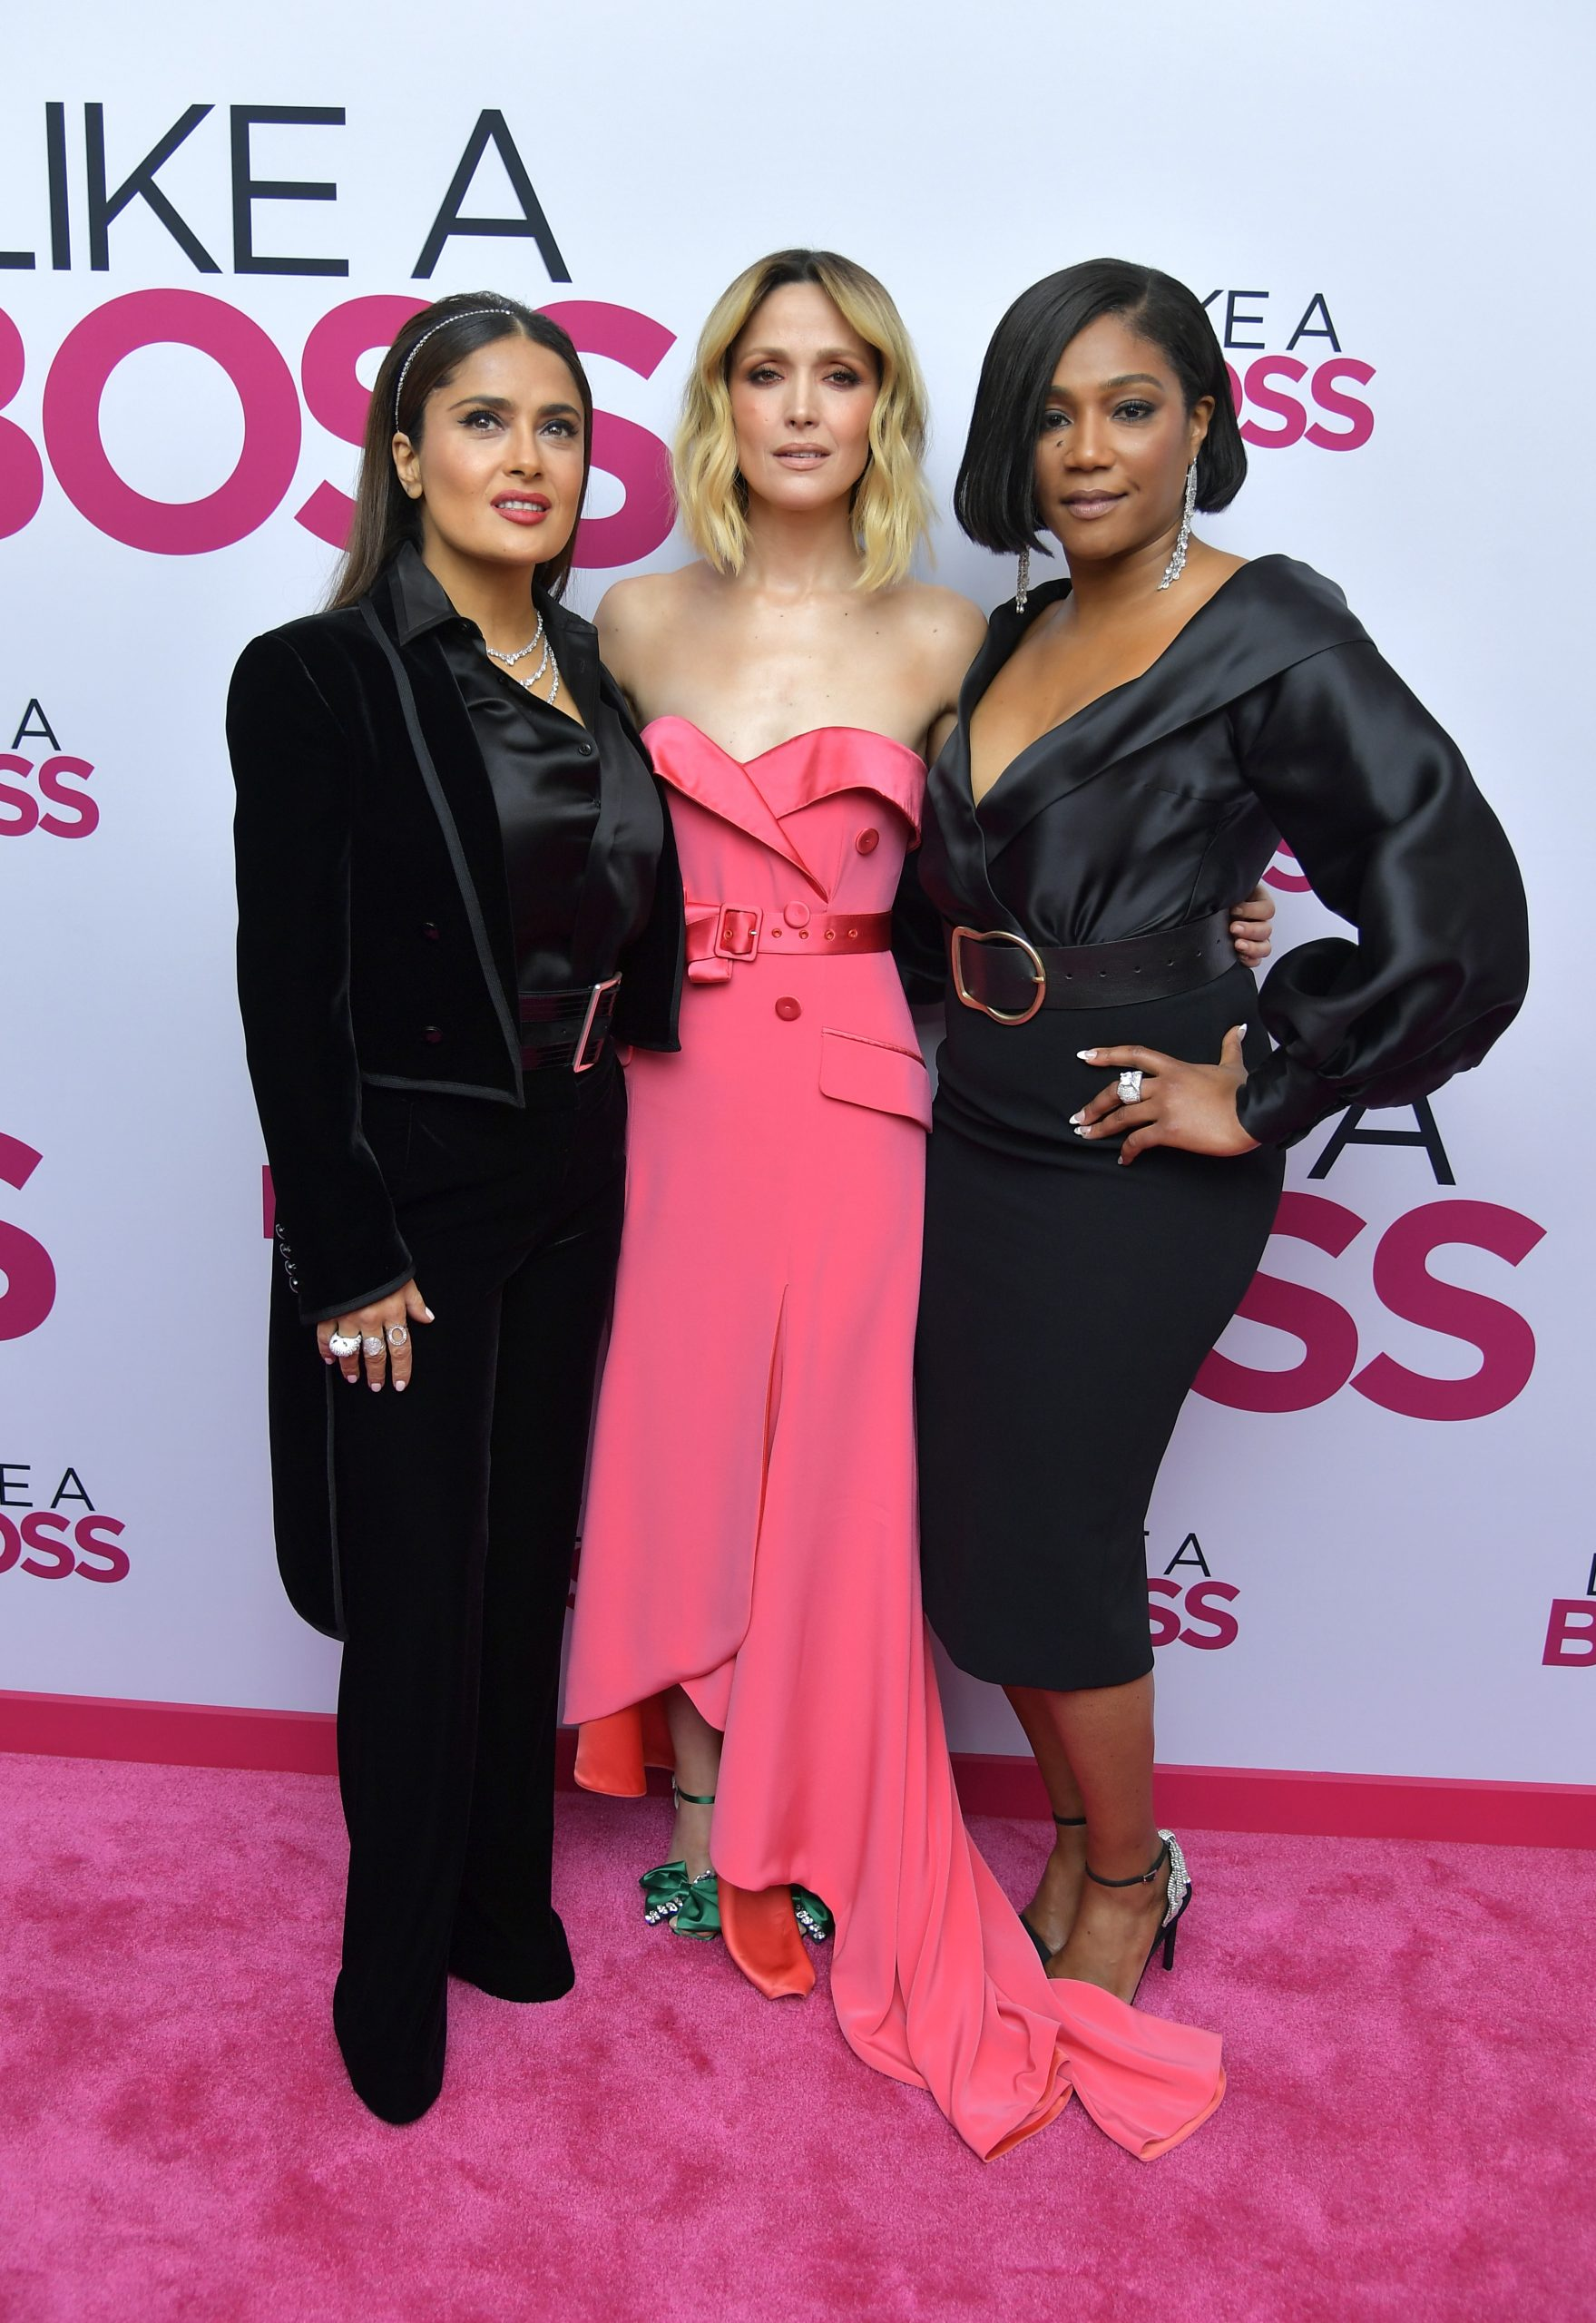 Like A Boss Premiere In New York City